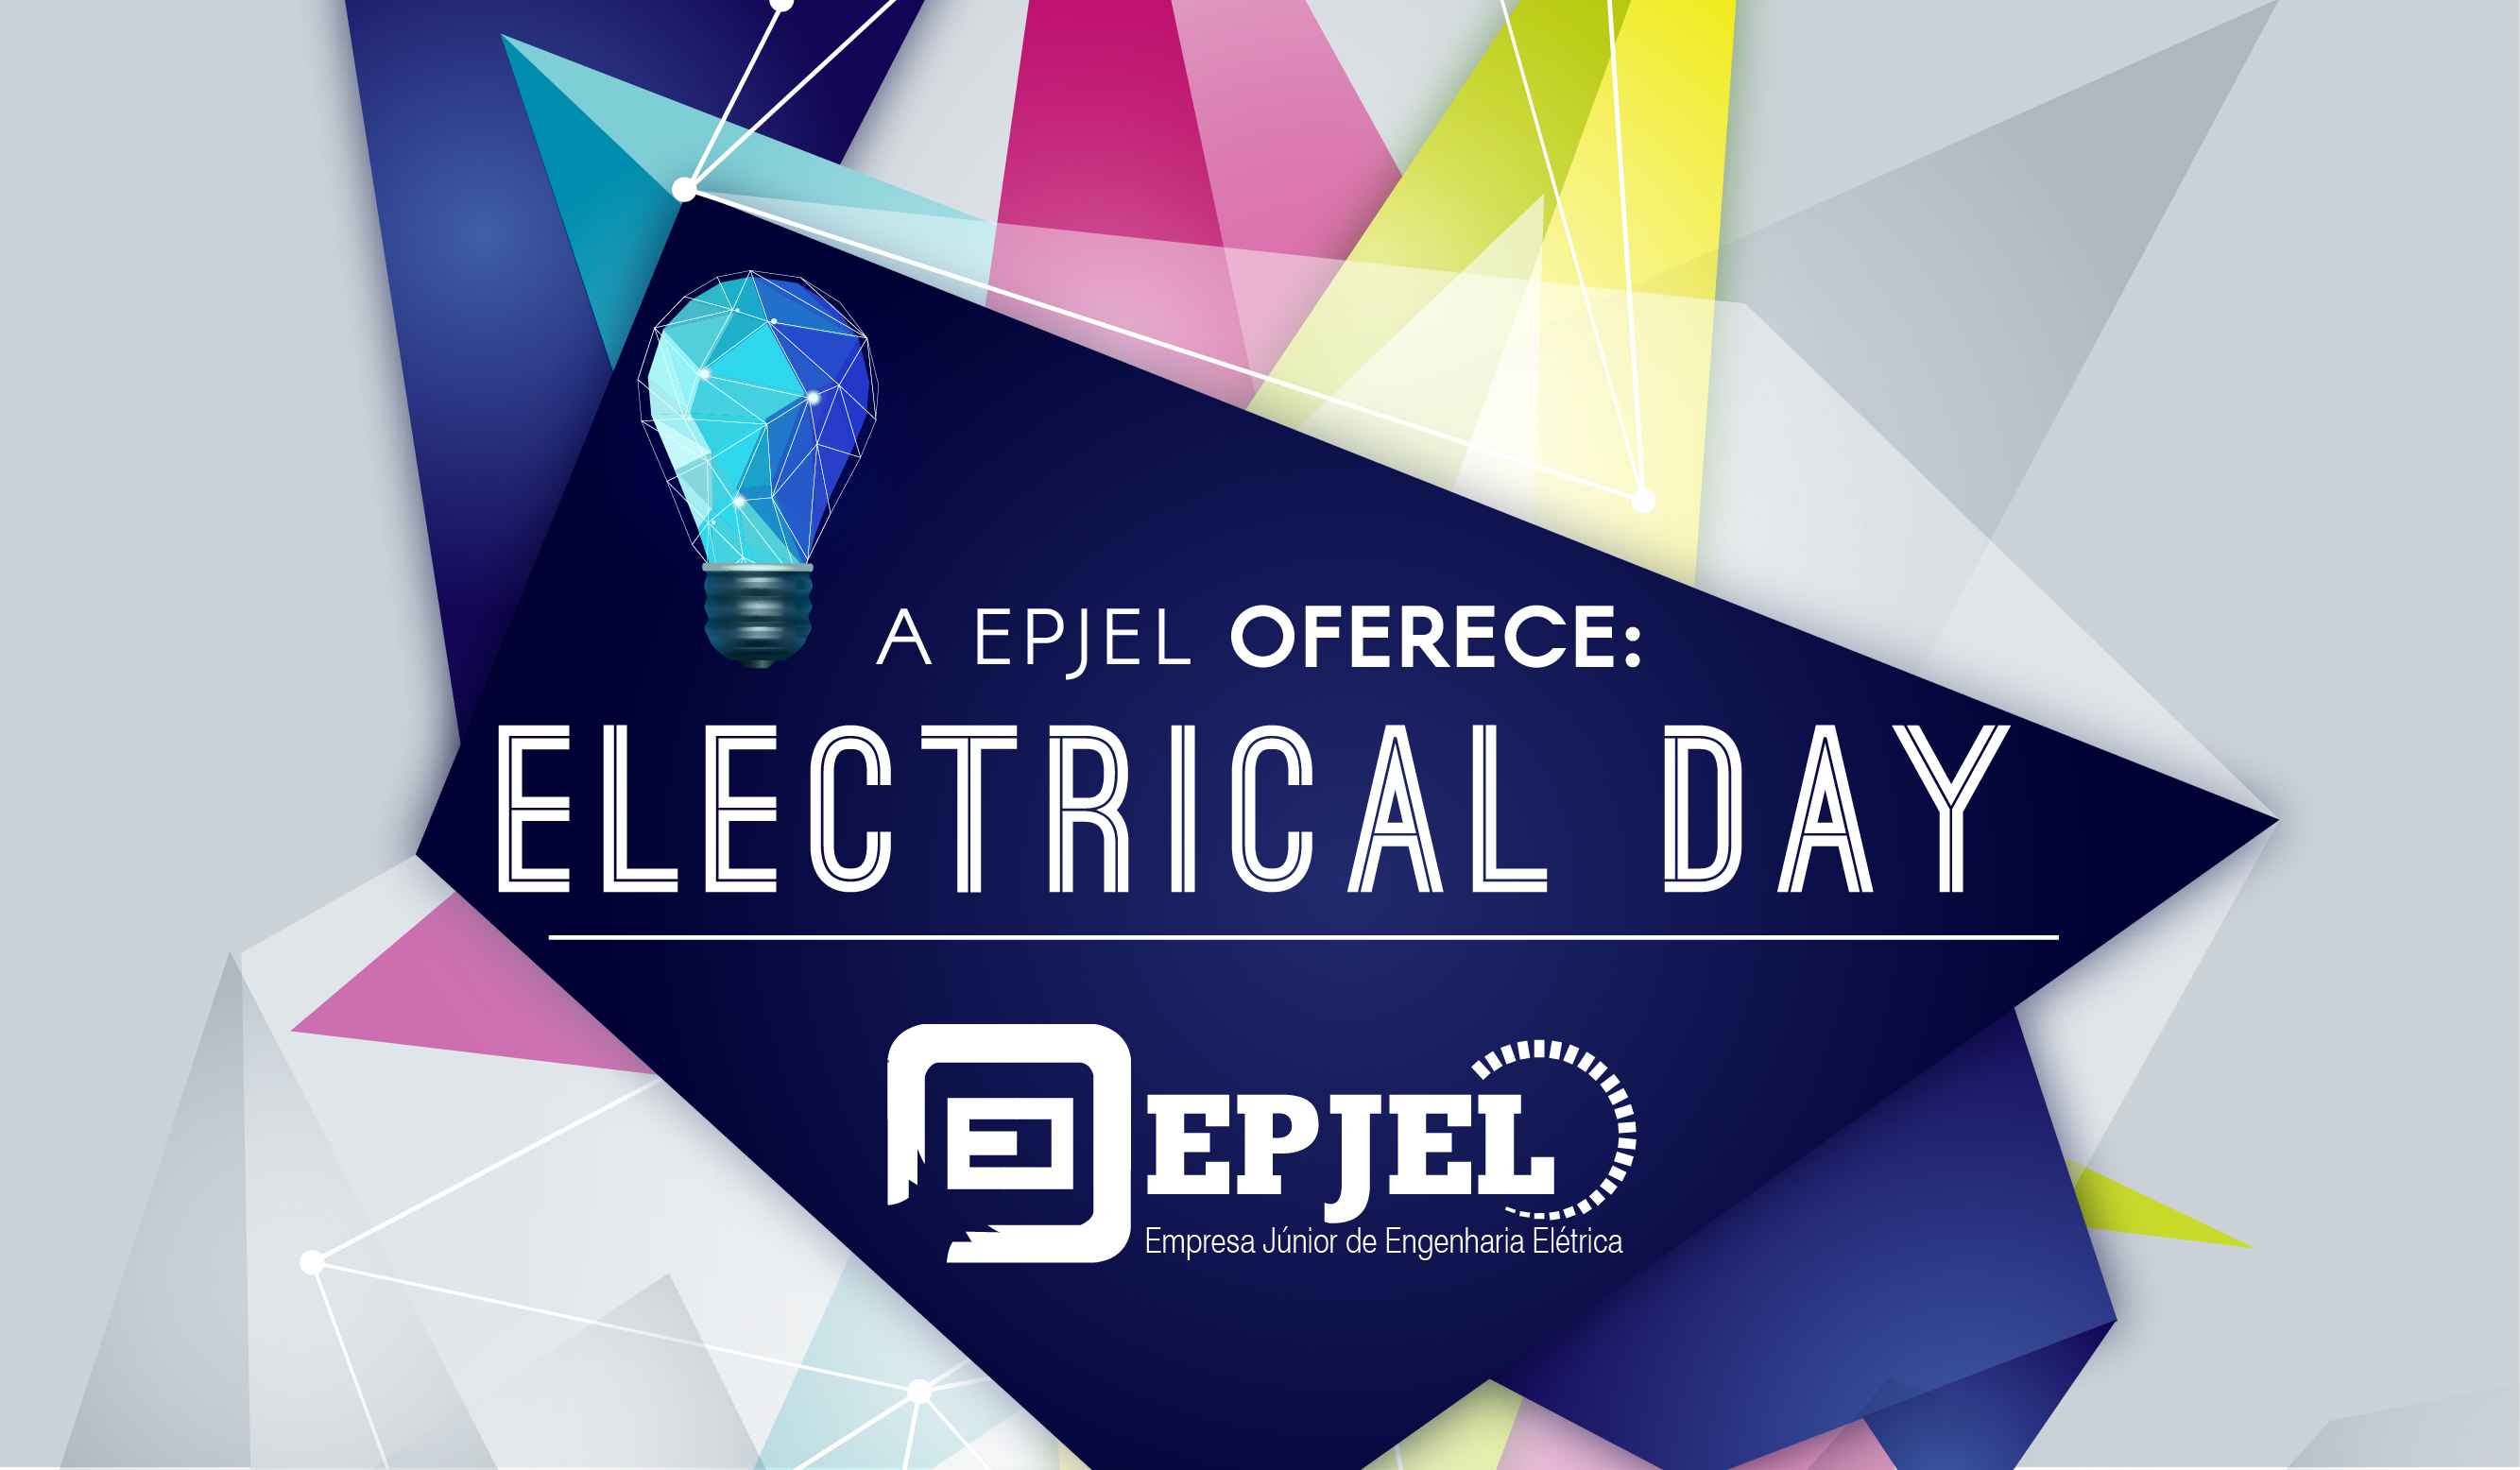 ELECTRICAL DAY 2016